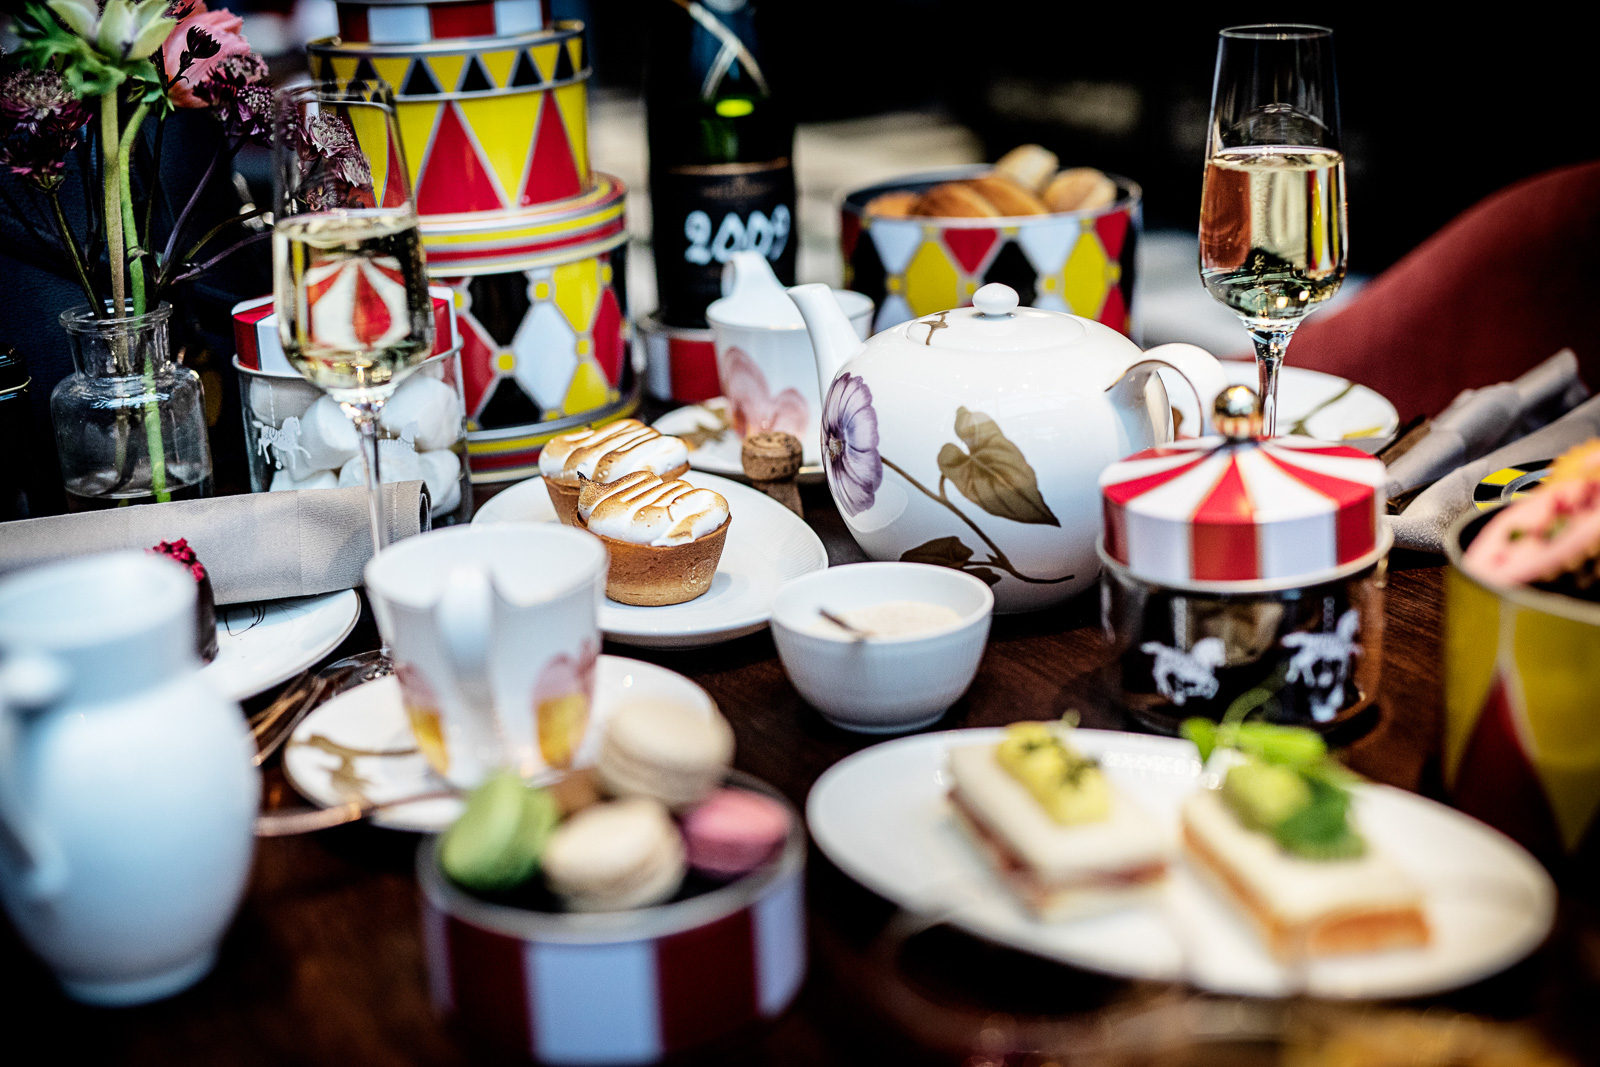 Brunch, te, afternoon tea, hygge, mad, sulten, lækkersulten, kage, frokost, kaffe, the, te